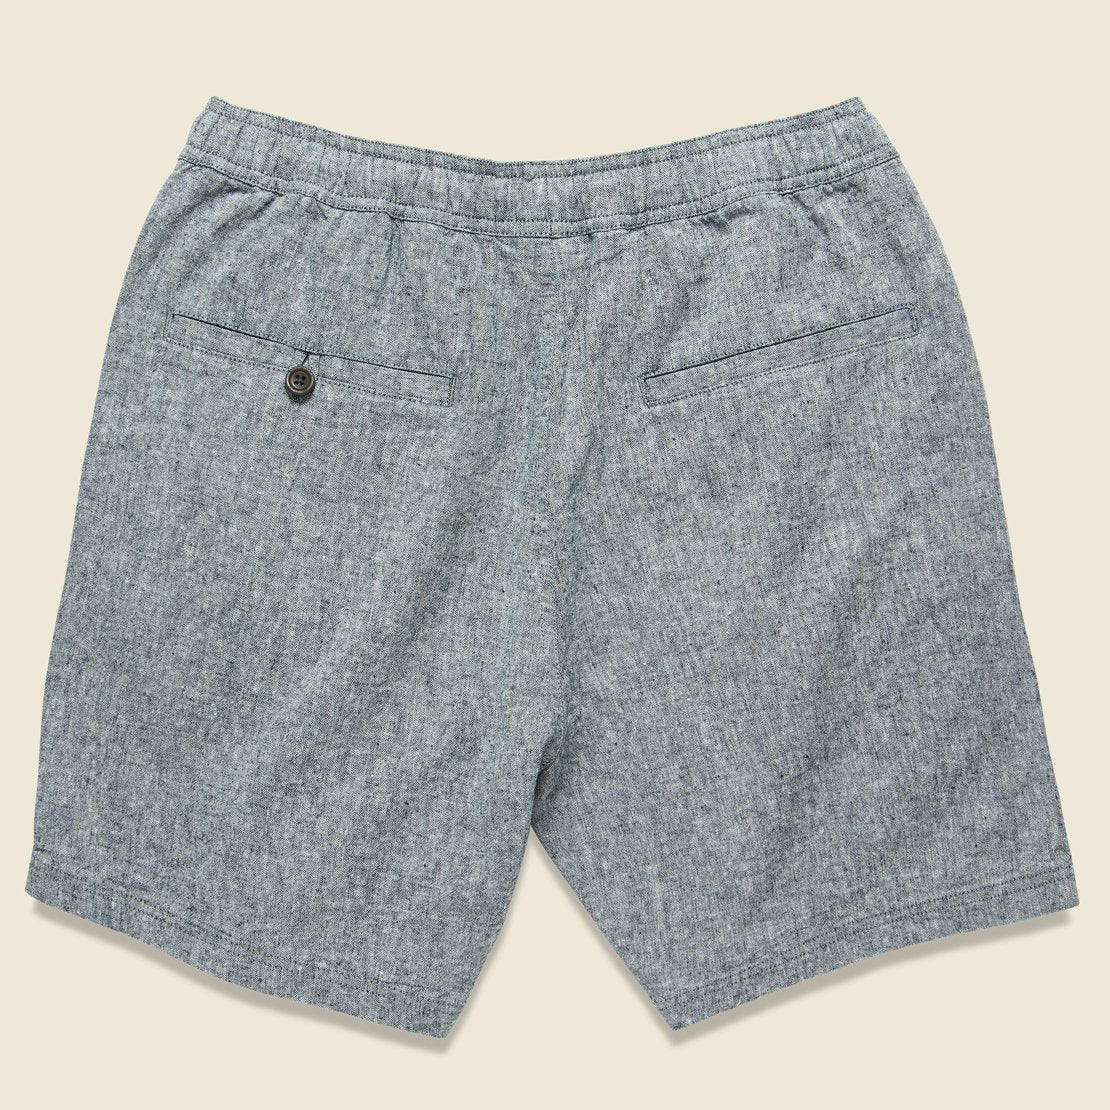 Isaiah Local Short - Navy